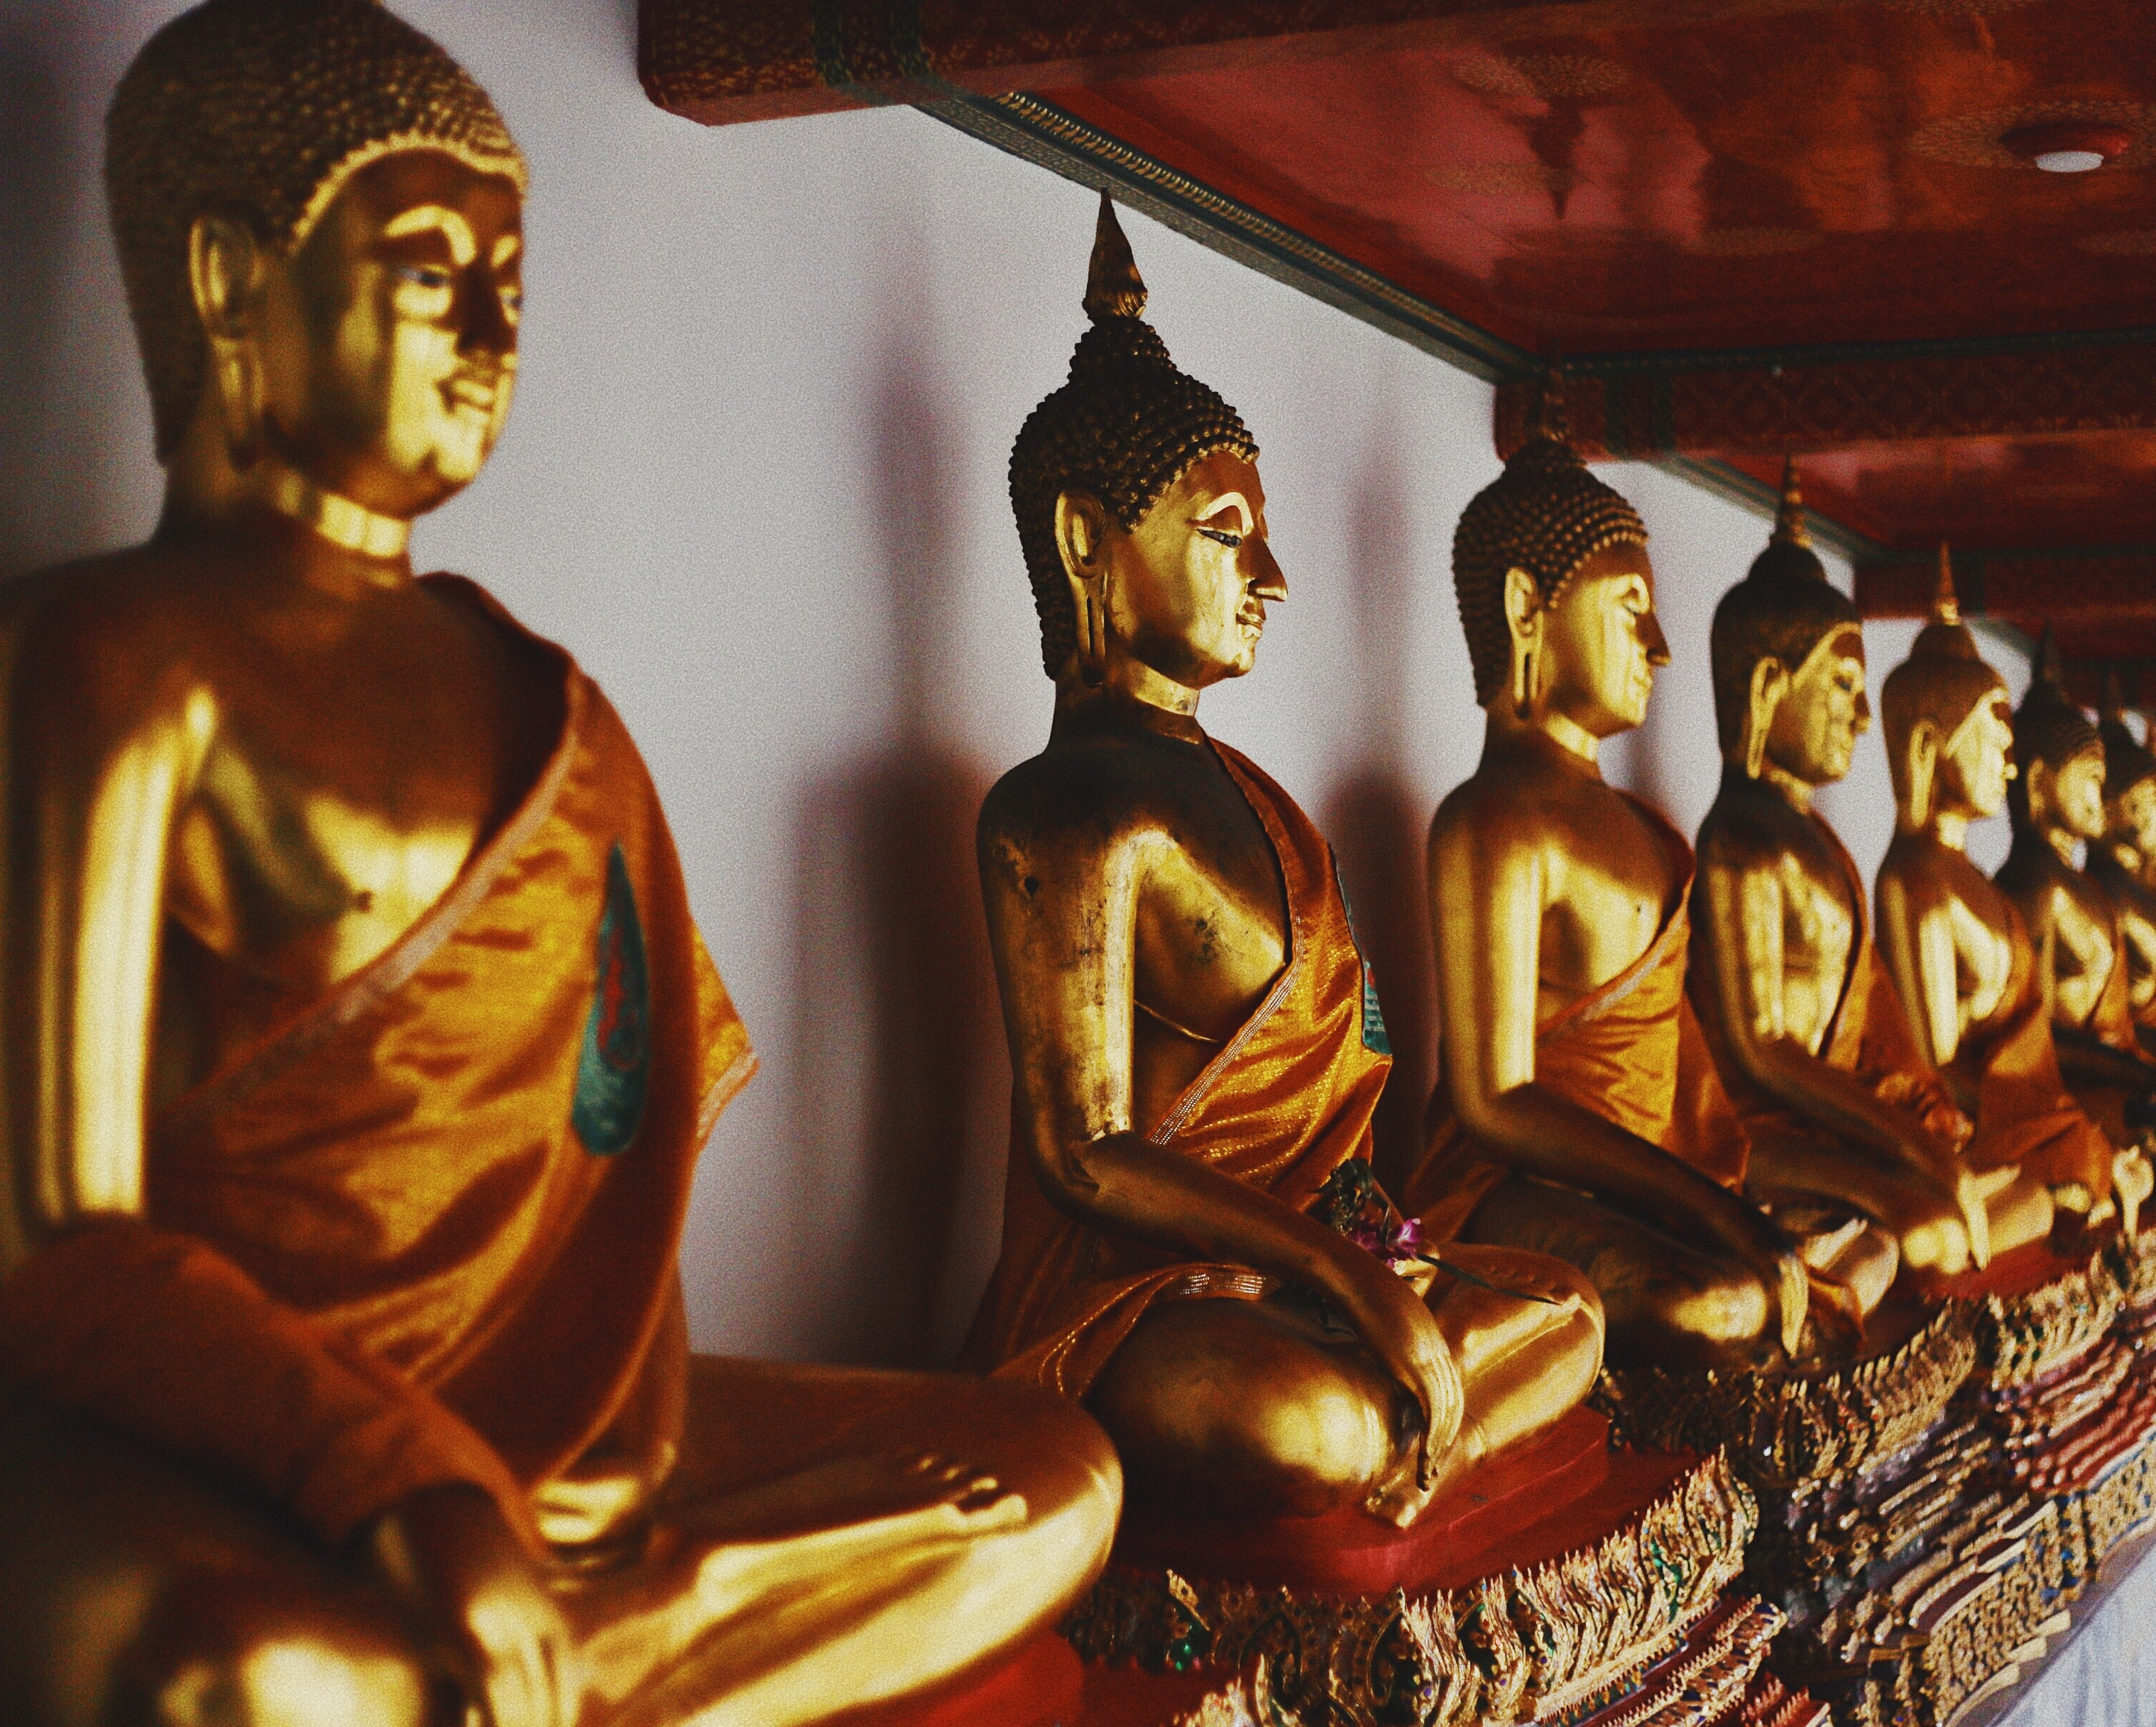 A majestic Buddha statue is shown in the picture